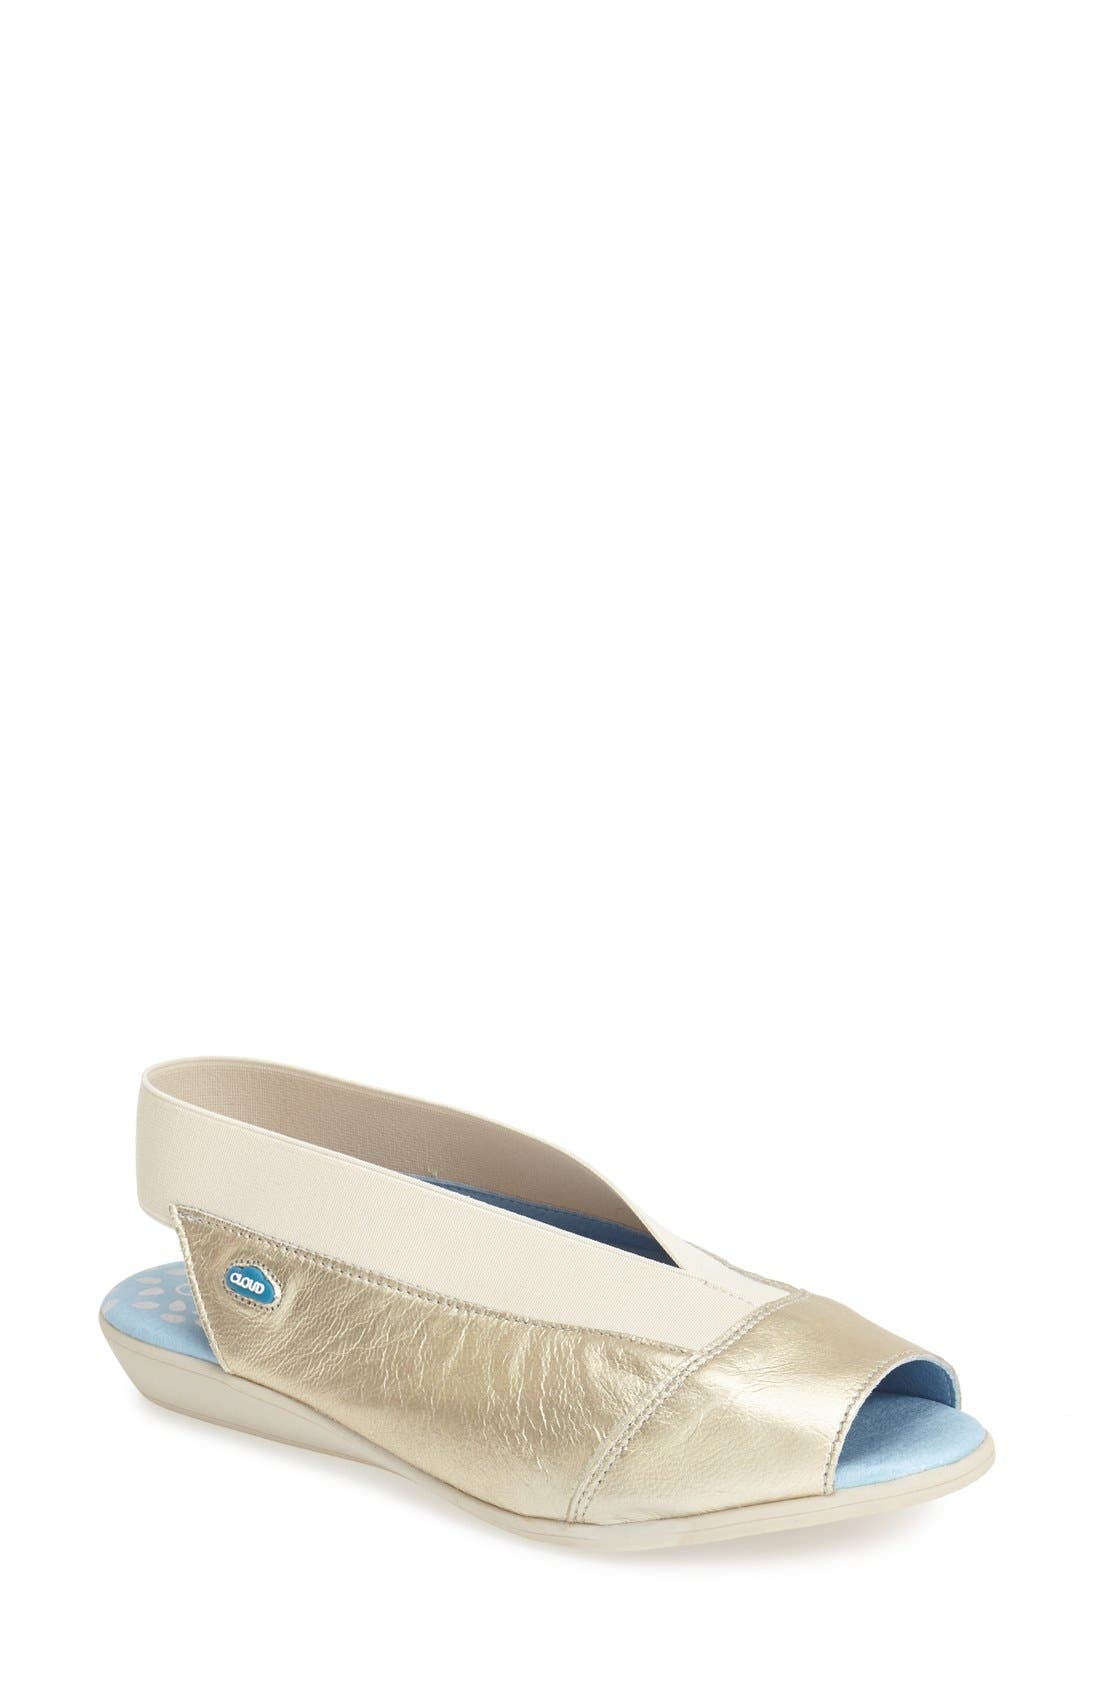 'Caliber' Peep Toe Leather Flat,                             Main thumbnail 1, color,                             Gold